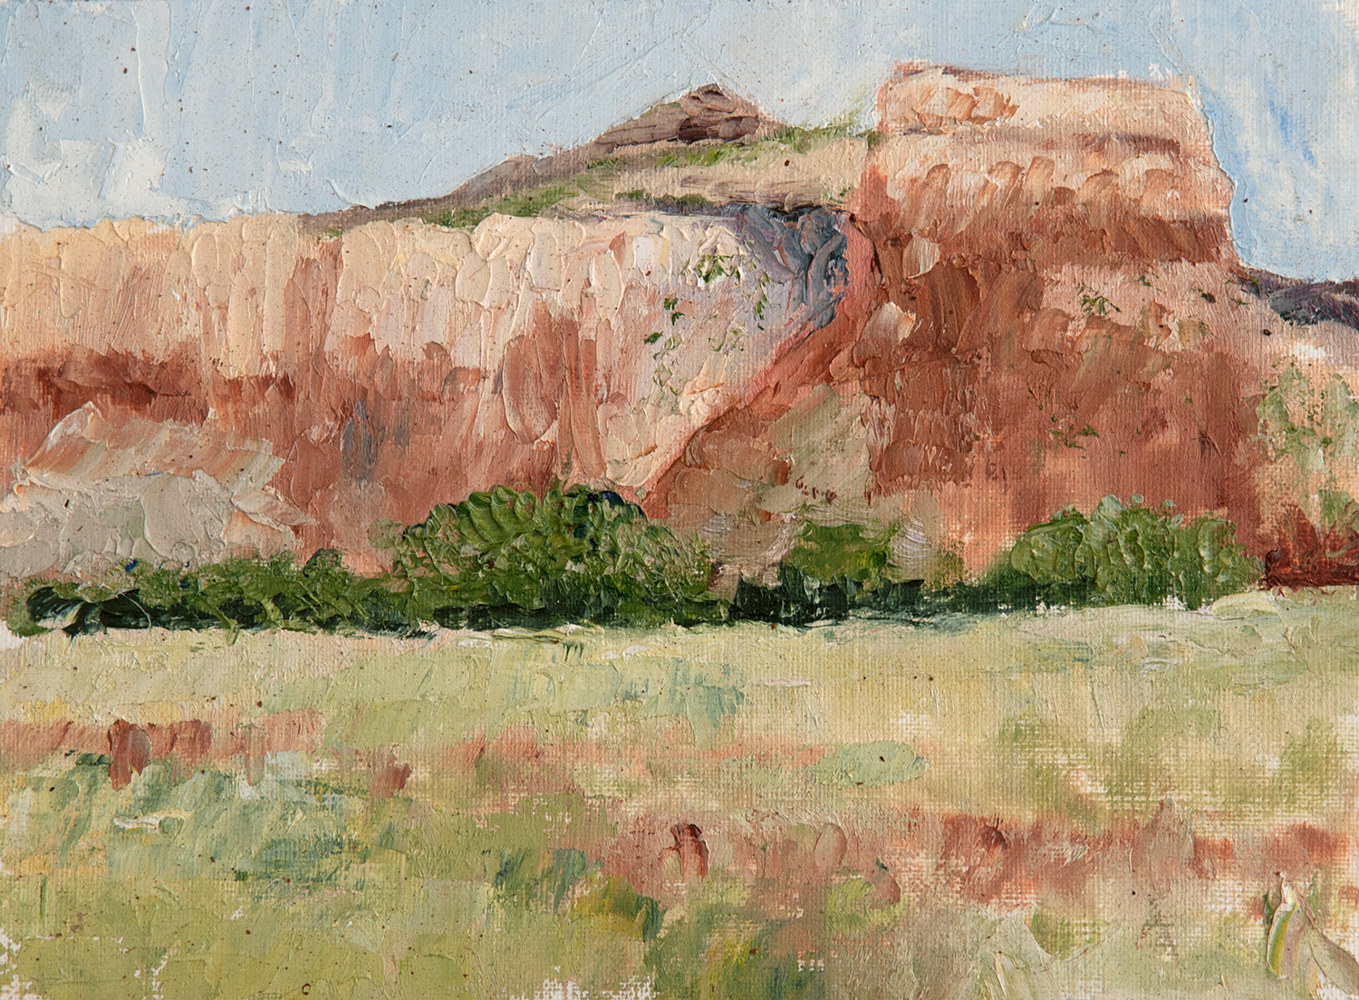 Oil painting Ghost Ranch03 by Kathleen Gross